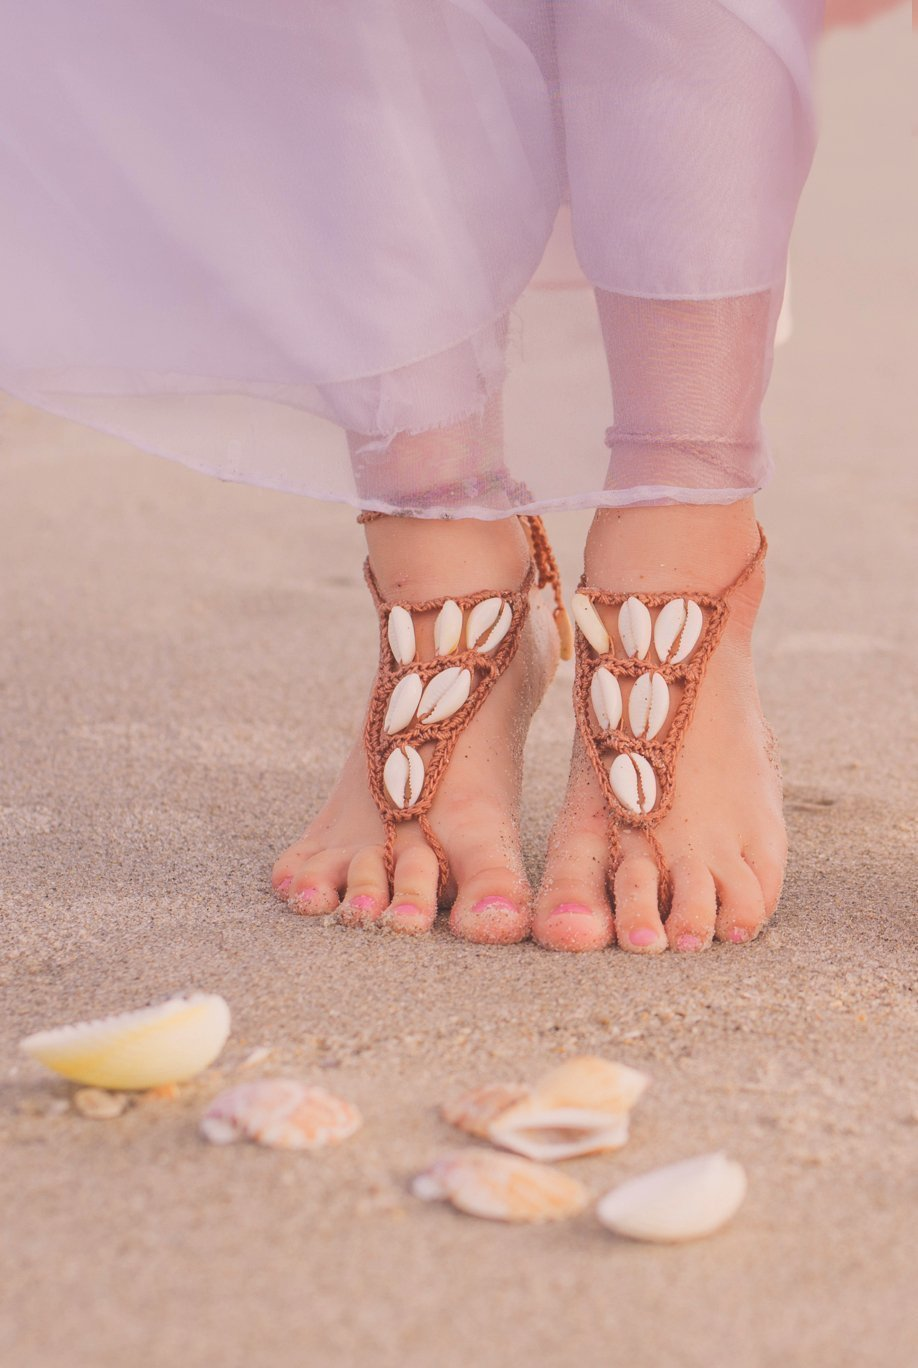 07c8eb0c3 Amazon.com  1 Pair of Baby Barefoot Sandals Foot Jewelery Beach Shoes   Handmade